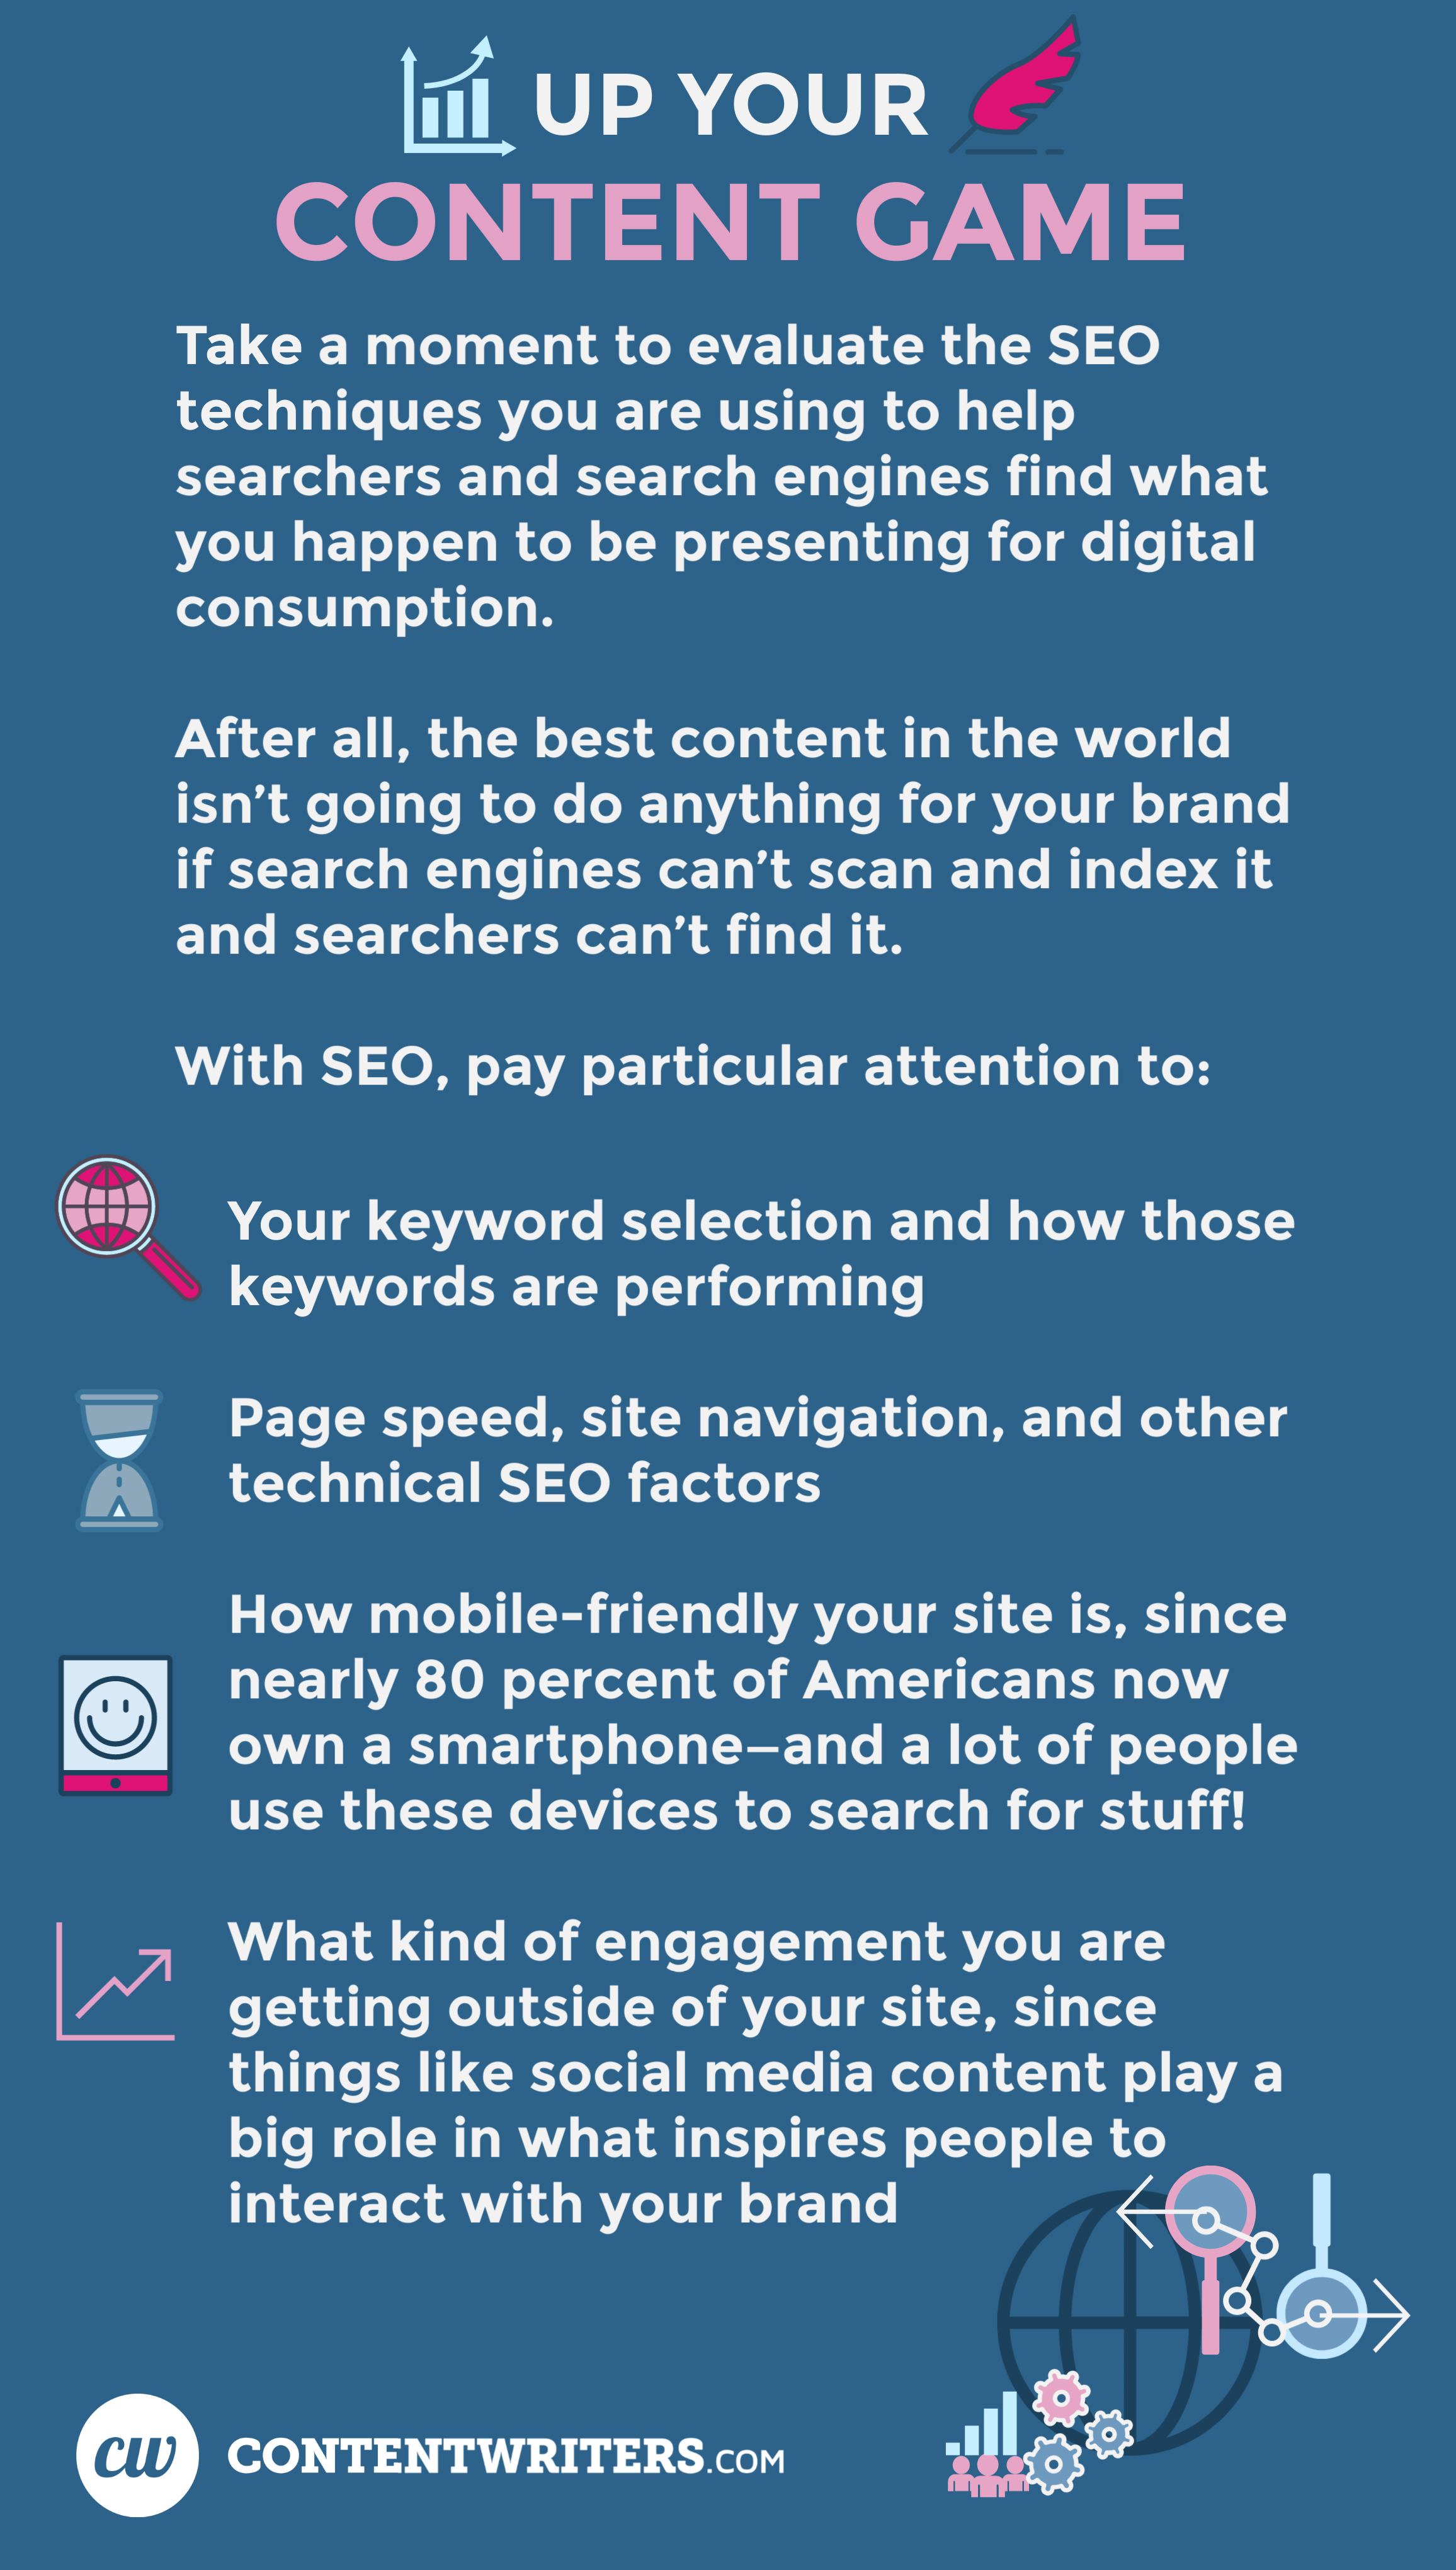 As long as we're on the topic of content, take a moment to evaluate the SEO techniques you are using to help searchers and search engines find what you happen to be presenting for digital consumption. After all, the best content in the world isn't going to do anything for your brand if search engines can't scan and index it and searchers can't find it. With SEO, pay particular attention to:  Your keyword selection and how those keywords are performing Page speed, site navigation, and other technical SEO factors How mobile-friendly your site is, since nearly 80 percent of Americans now own a smartphone—and a lot of people use these devices to search for stuff! What kind of engagement you are getting outside of your site, since things like social media content play a big role in what inspires people to interact with your brand